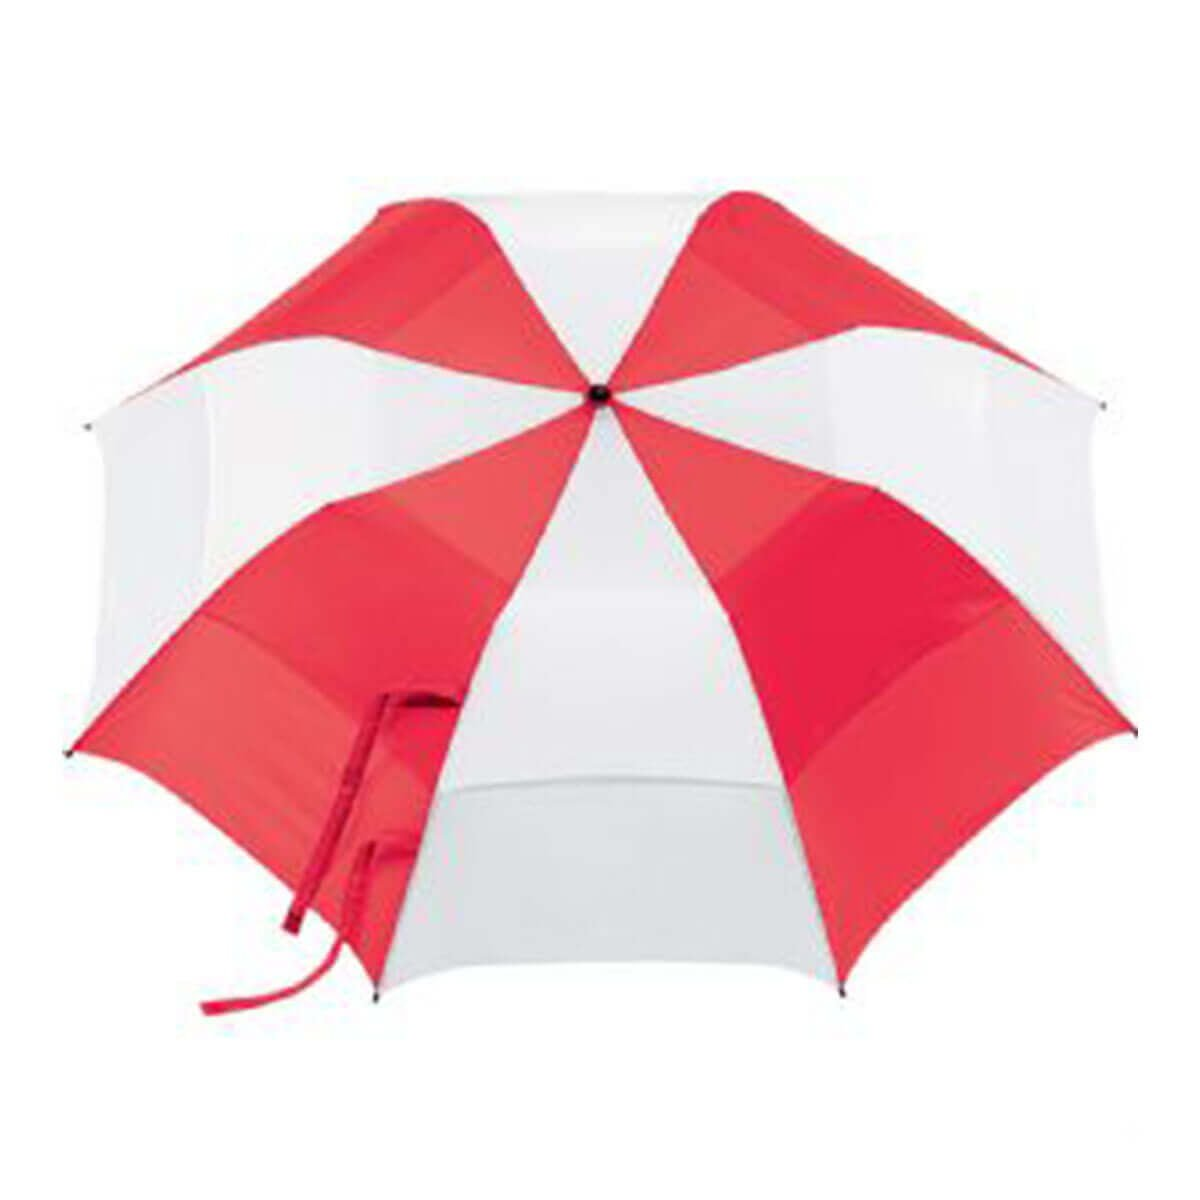 Vented Folding Umbrella-Red & White.